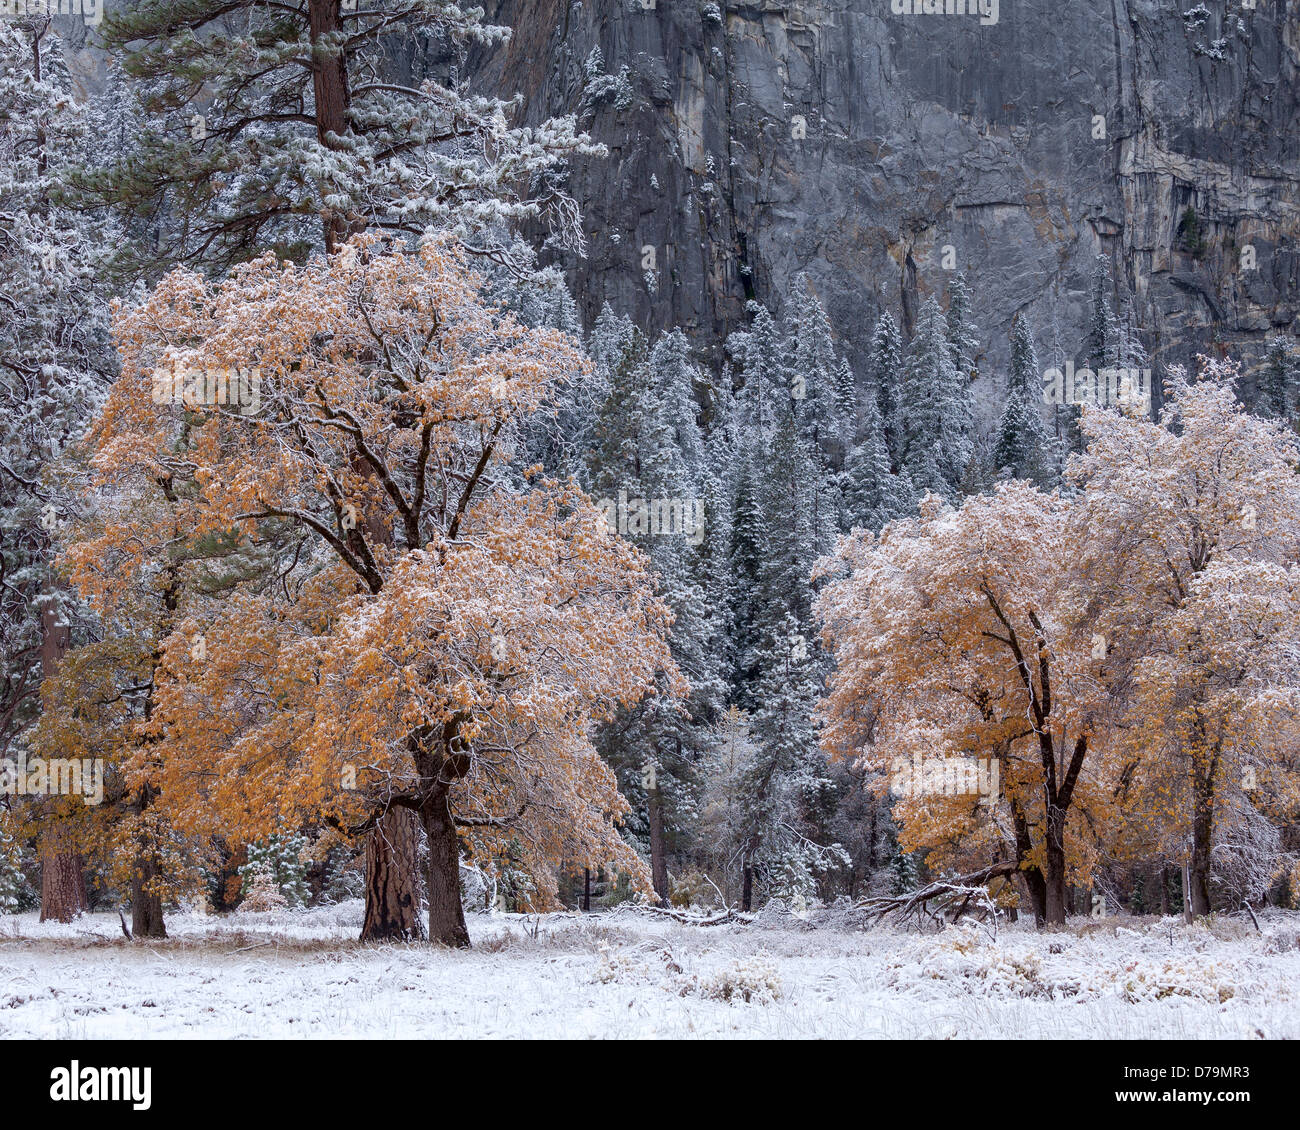 Yosemite National Park, California: Trees of El Capitan Meadow showing late fall colors and a dusting of snow, Yosemite - Stock Image